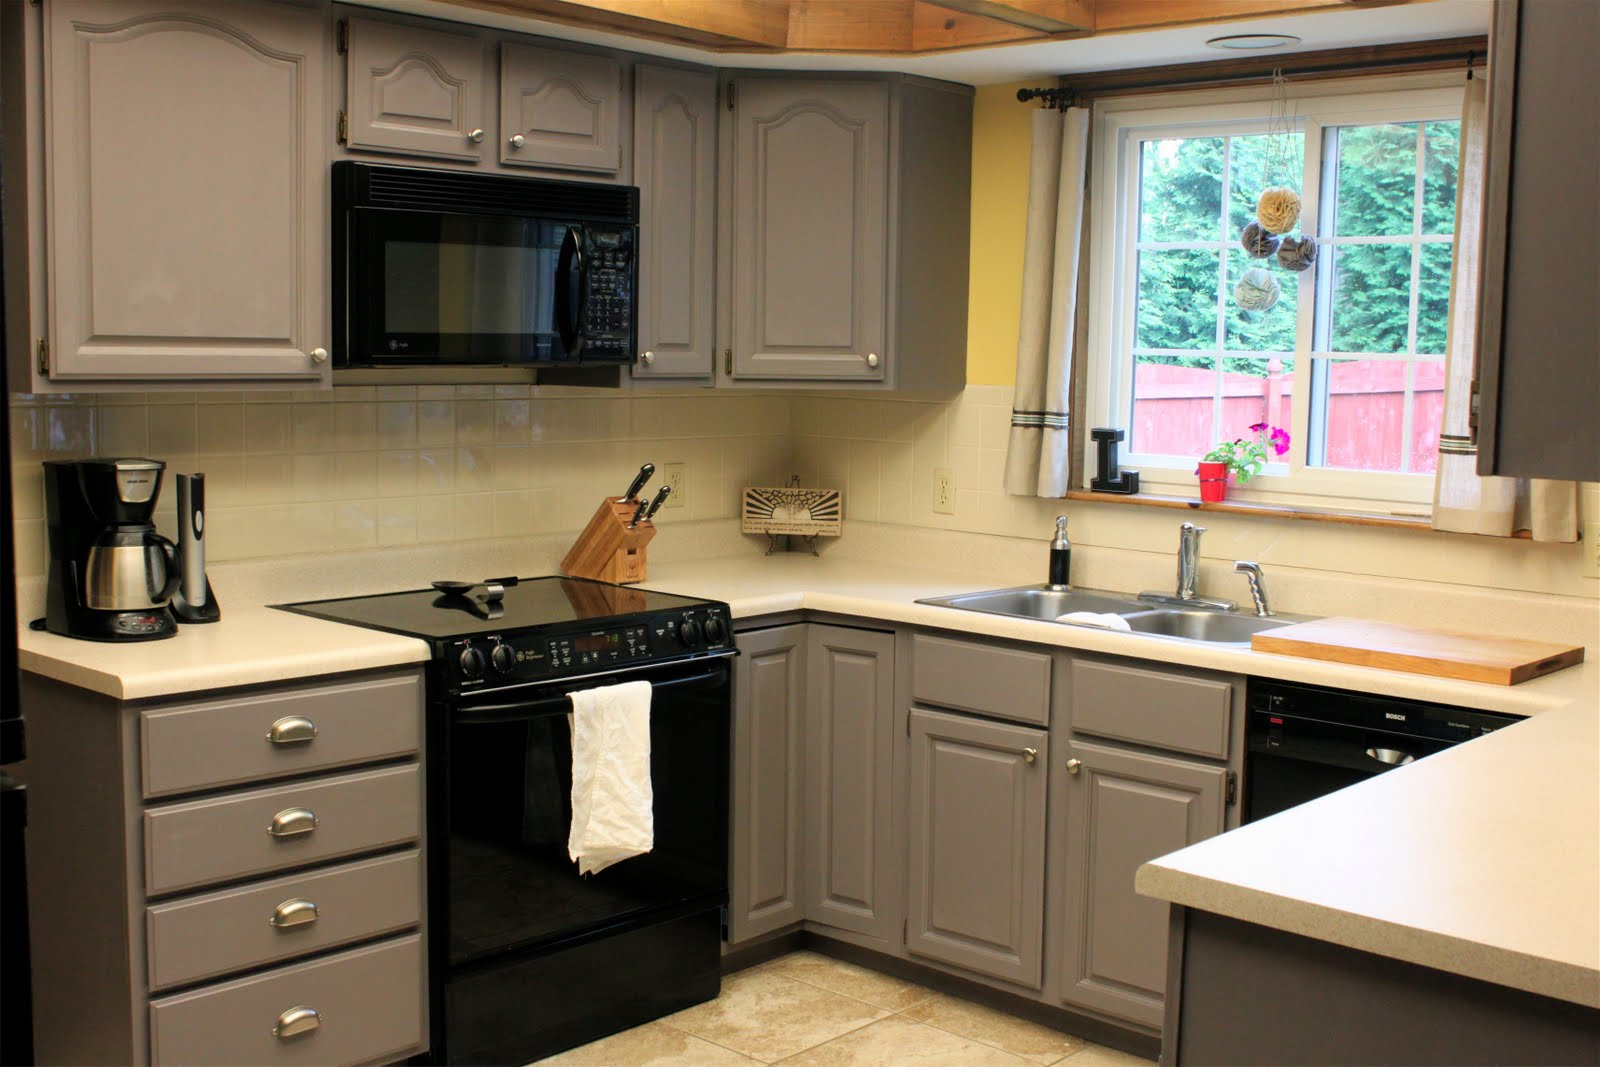 grey kitchen cabinet refacing plus black oven and sink with kitchen faucet under slider window for beautiful kitchen ideas